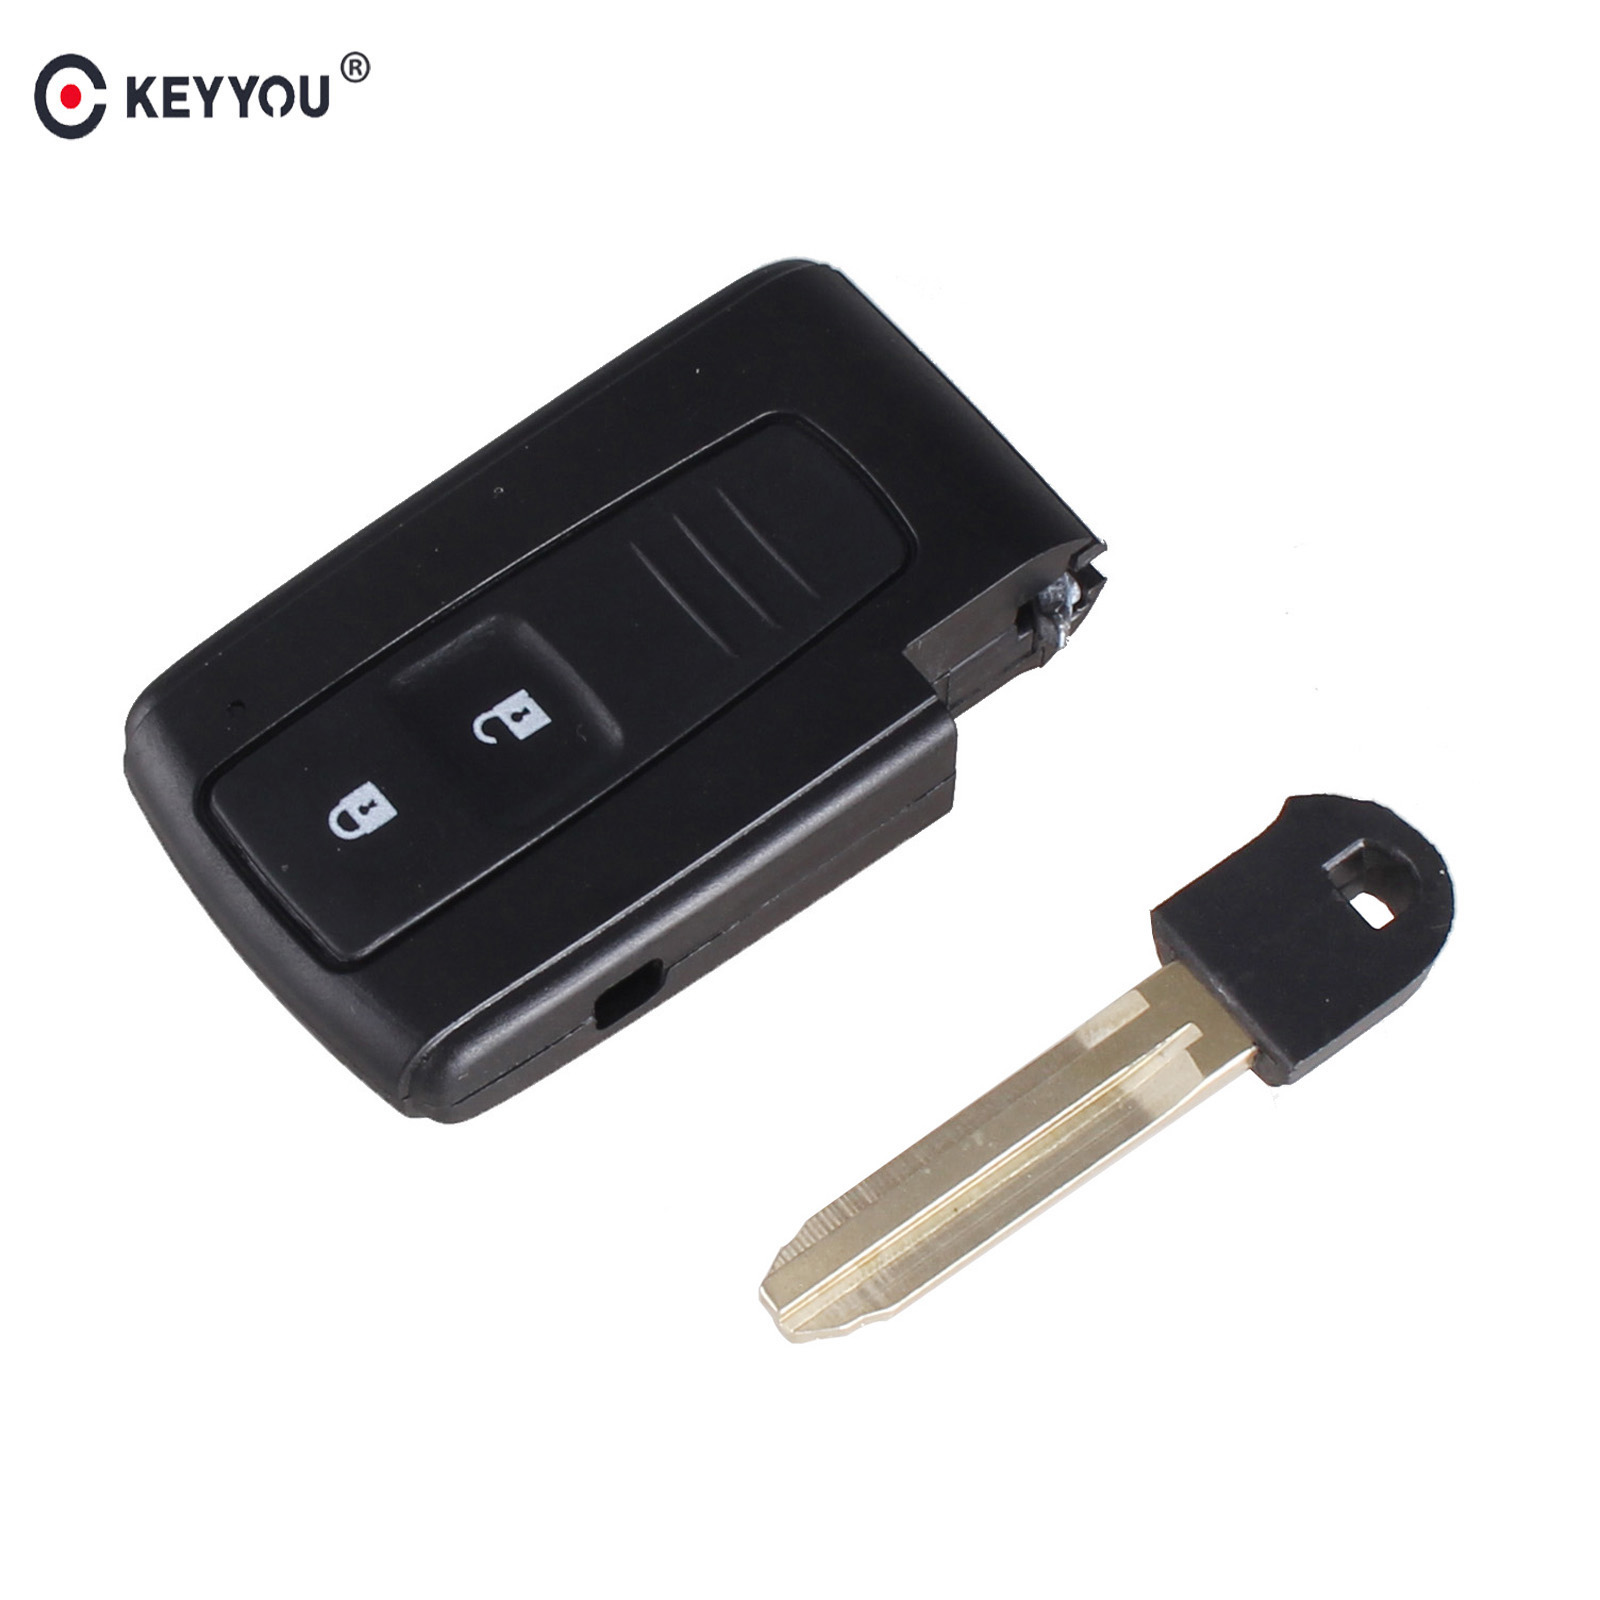 KEYYOU 2 BUTTON REMOTE KEY CASE FOR TOYOTA PRIUS COROLLA VERSO TOY43 BLADE(China)